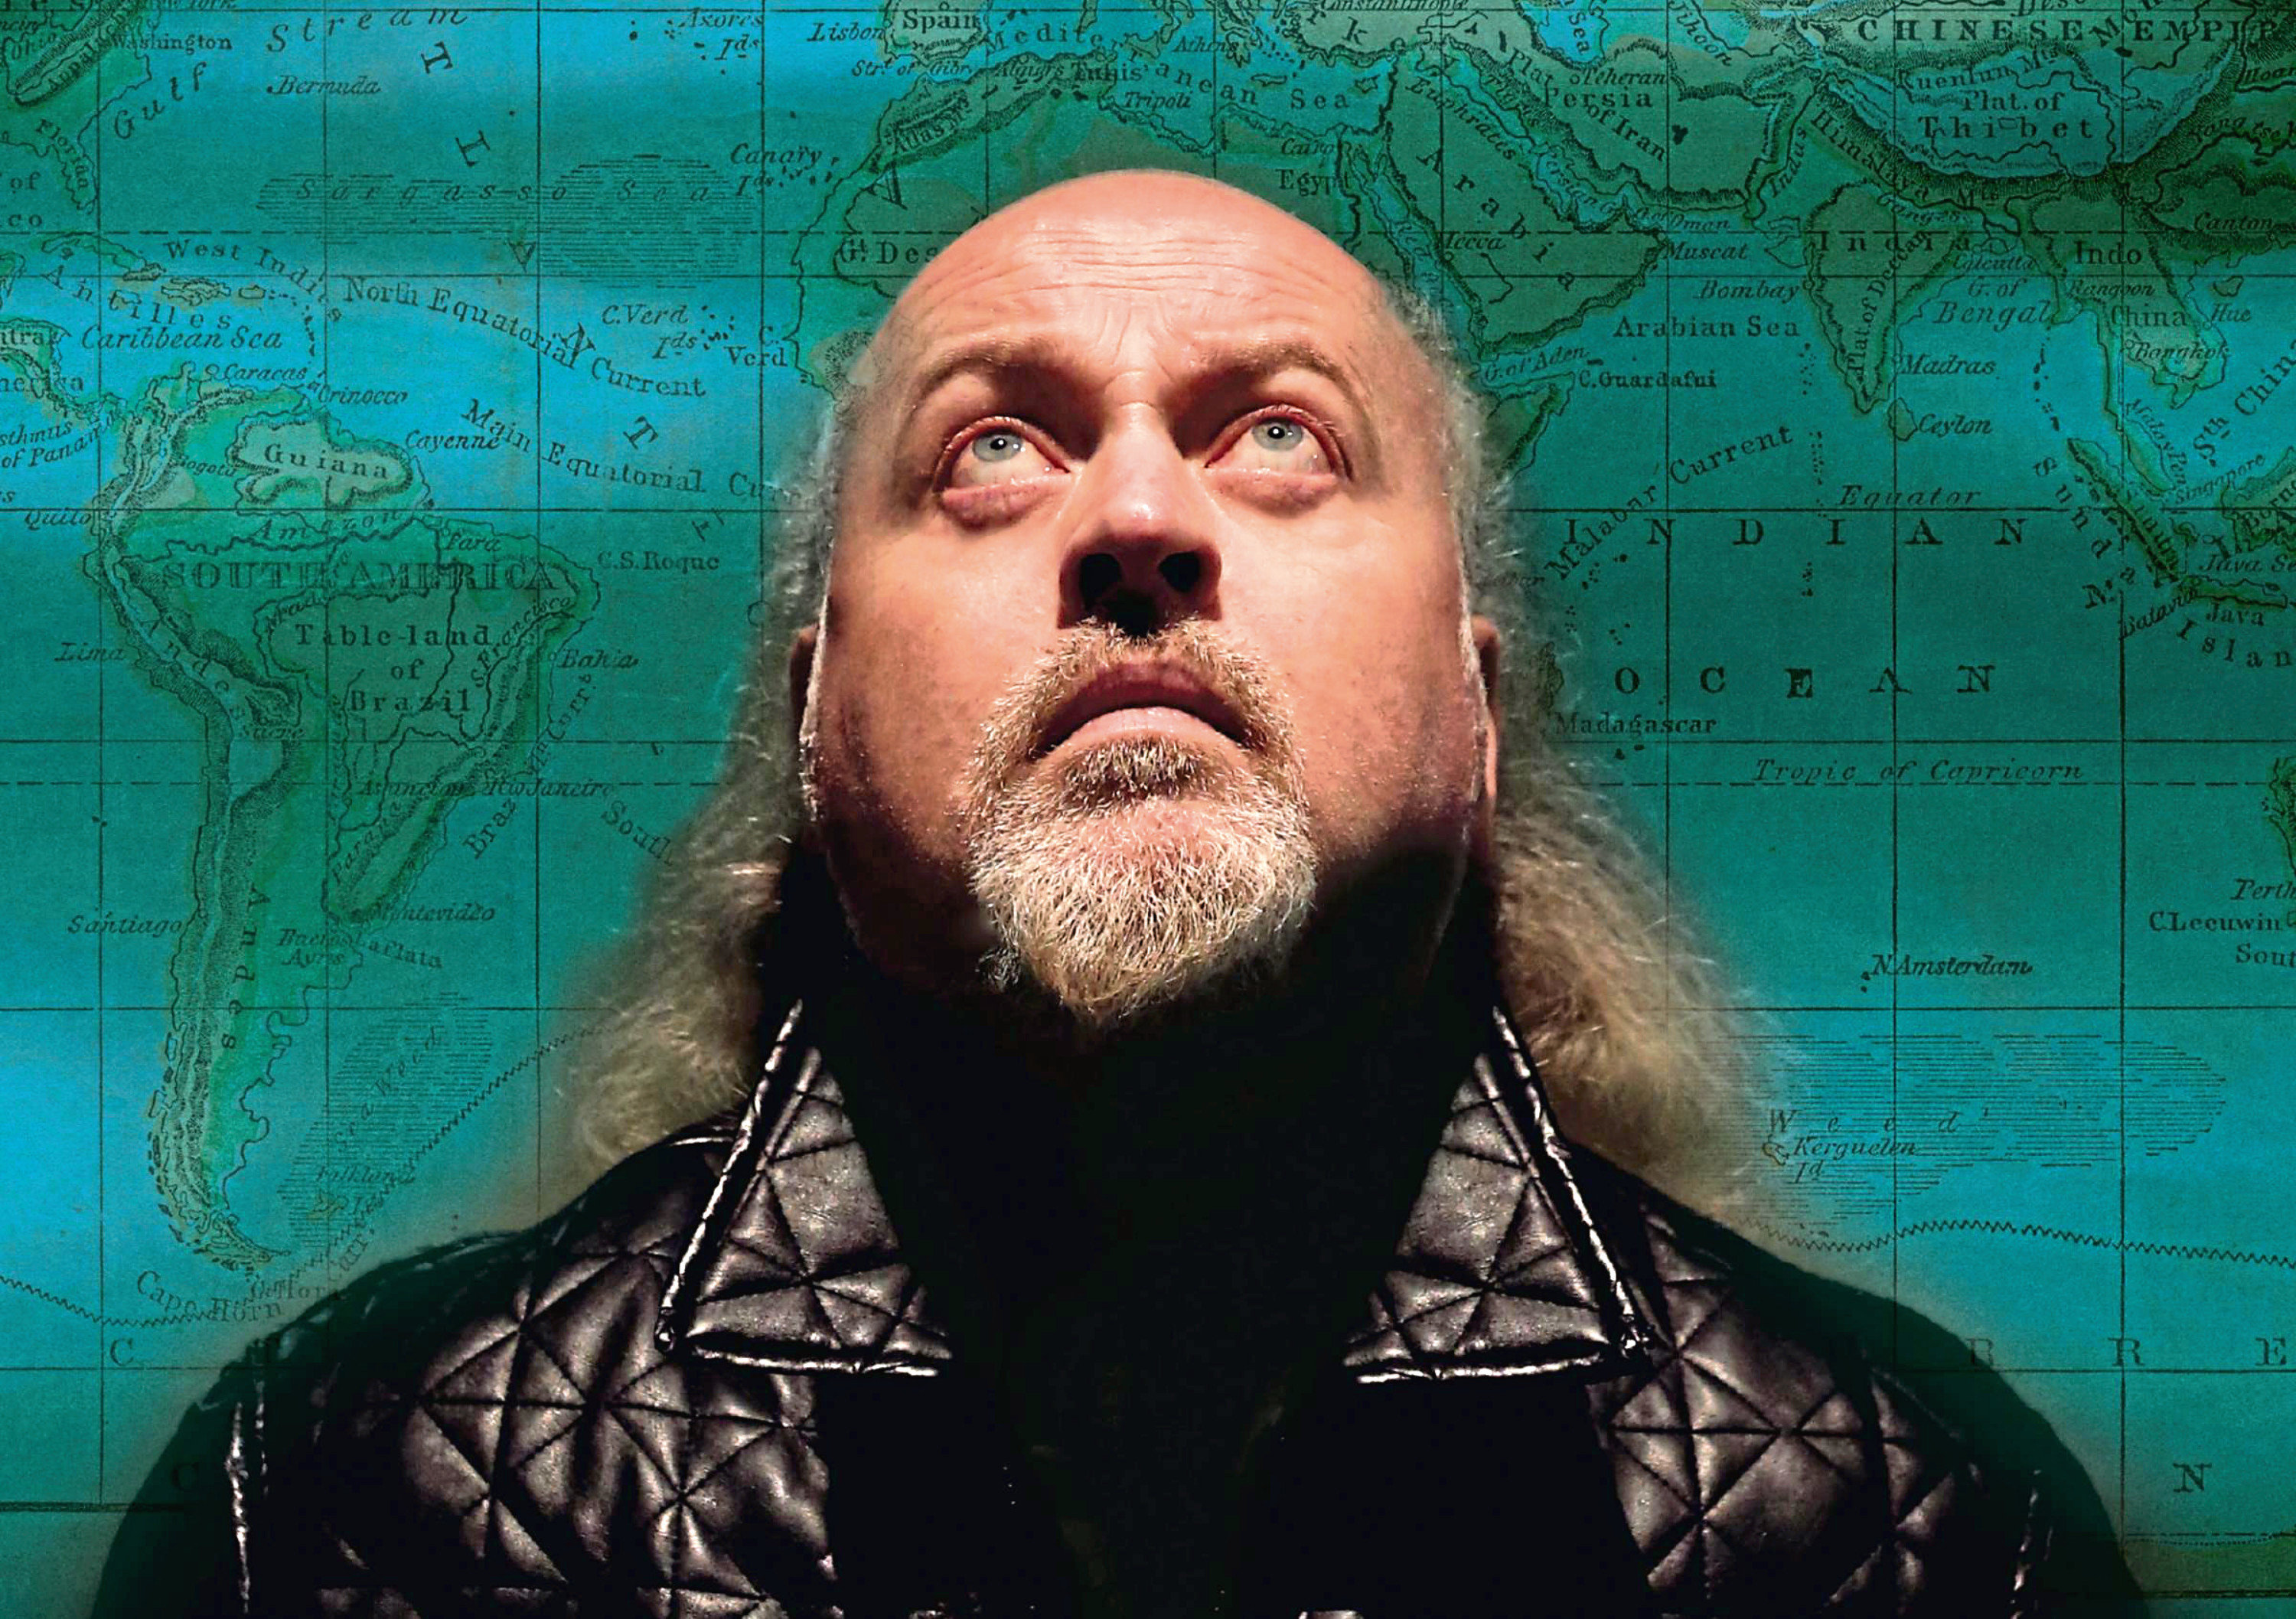 Bill Bailey will bring his new show Larks in Transit to Aberdeen next summer